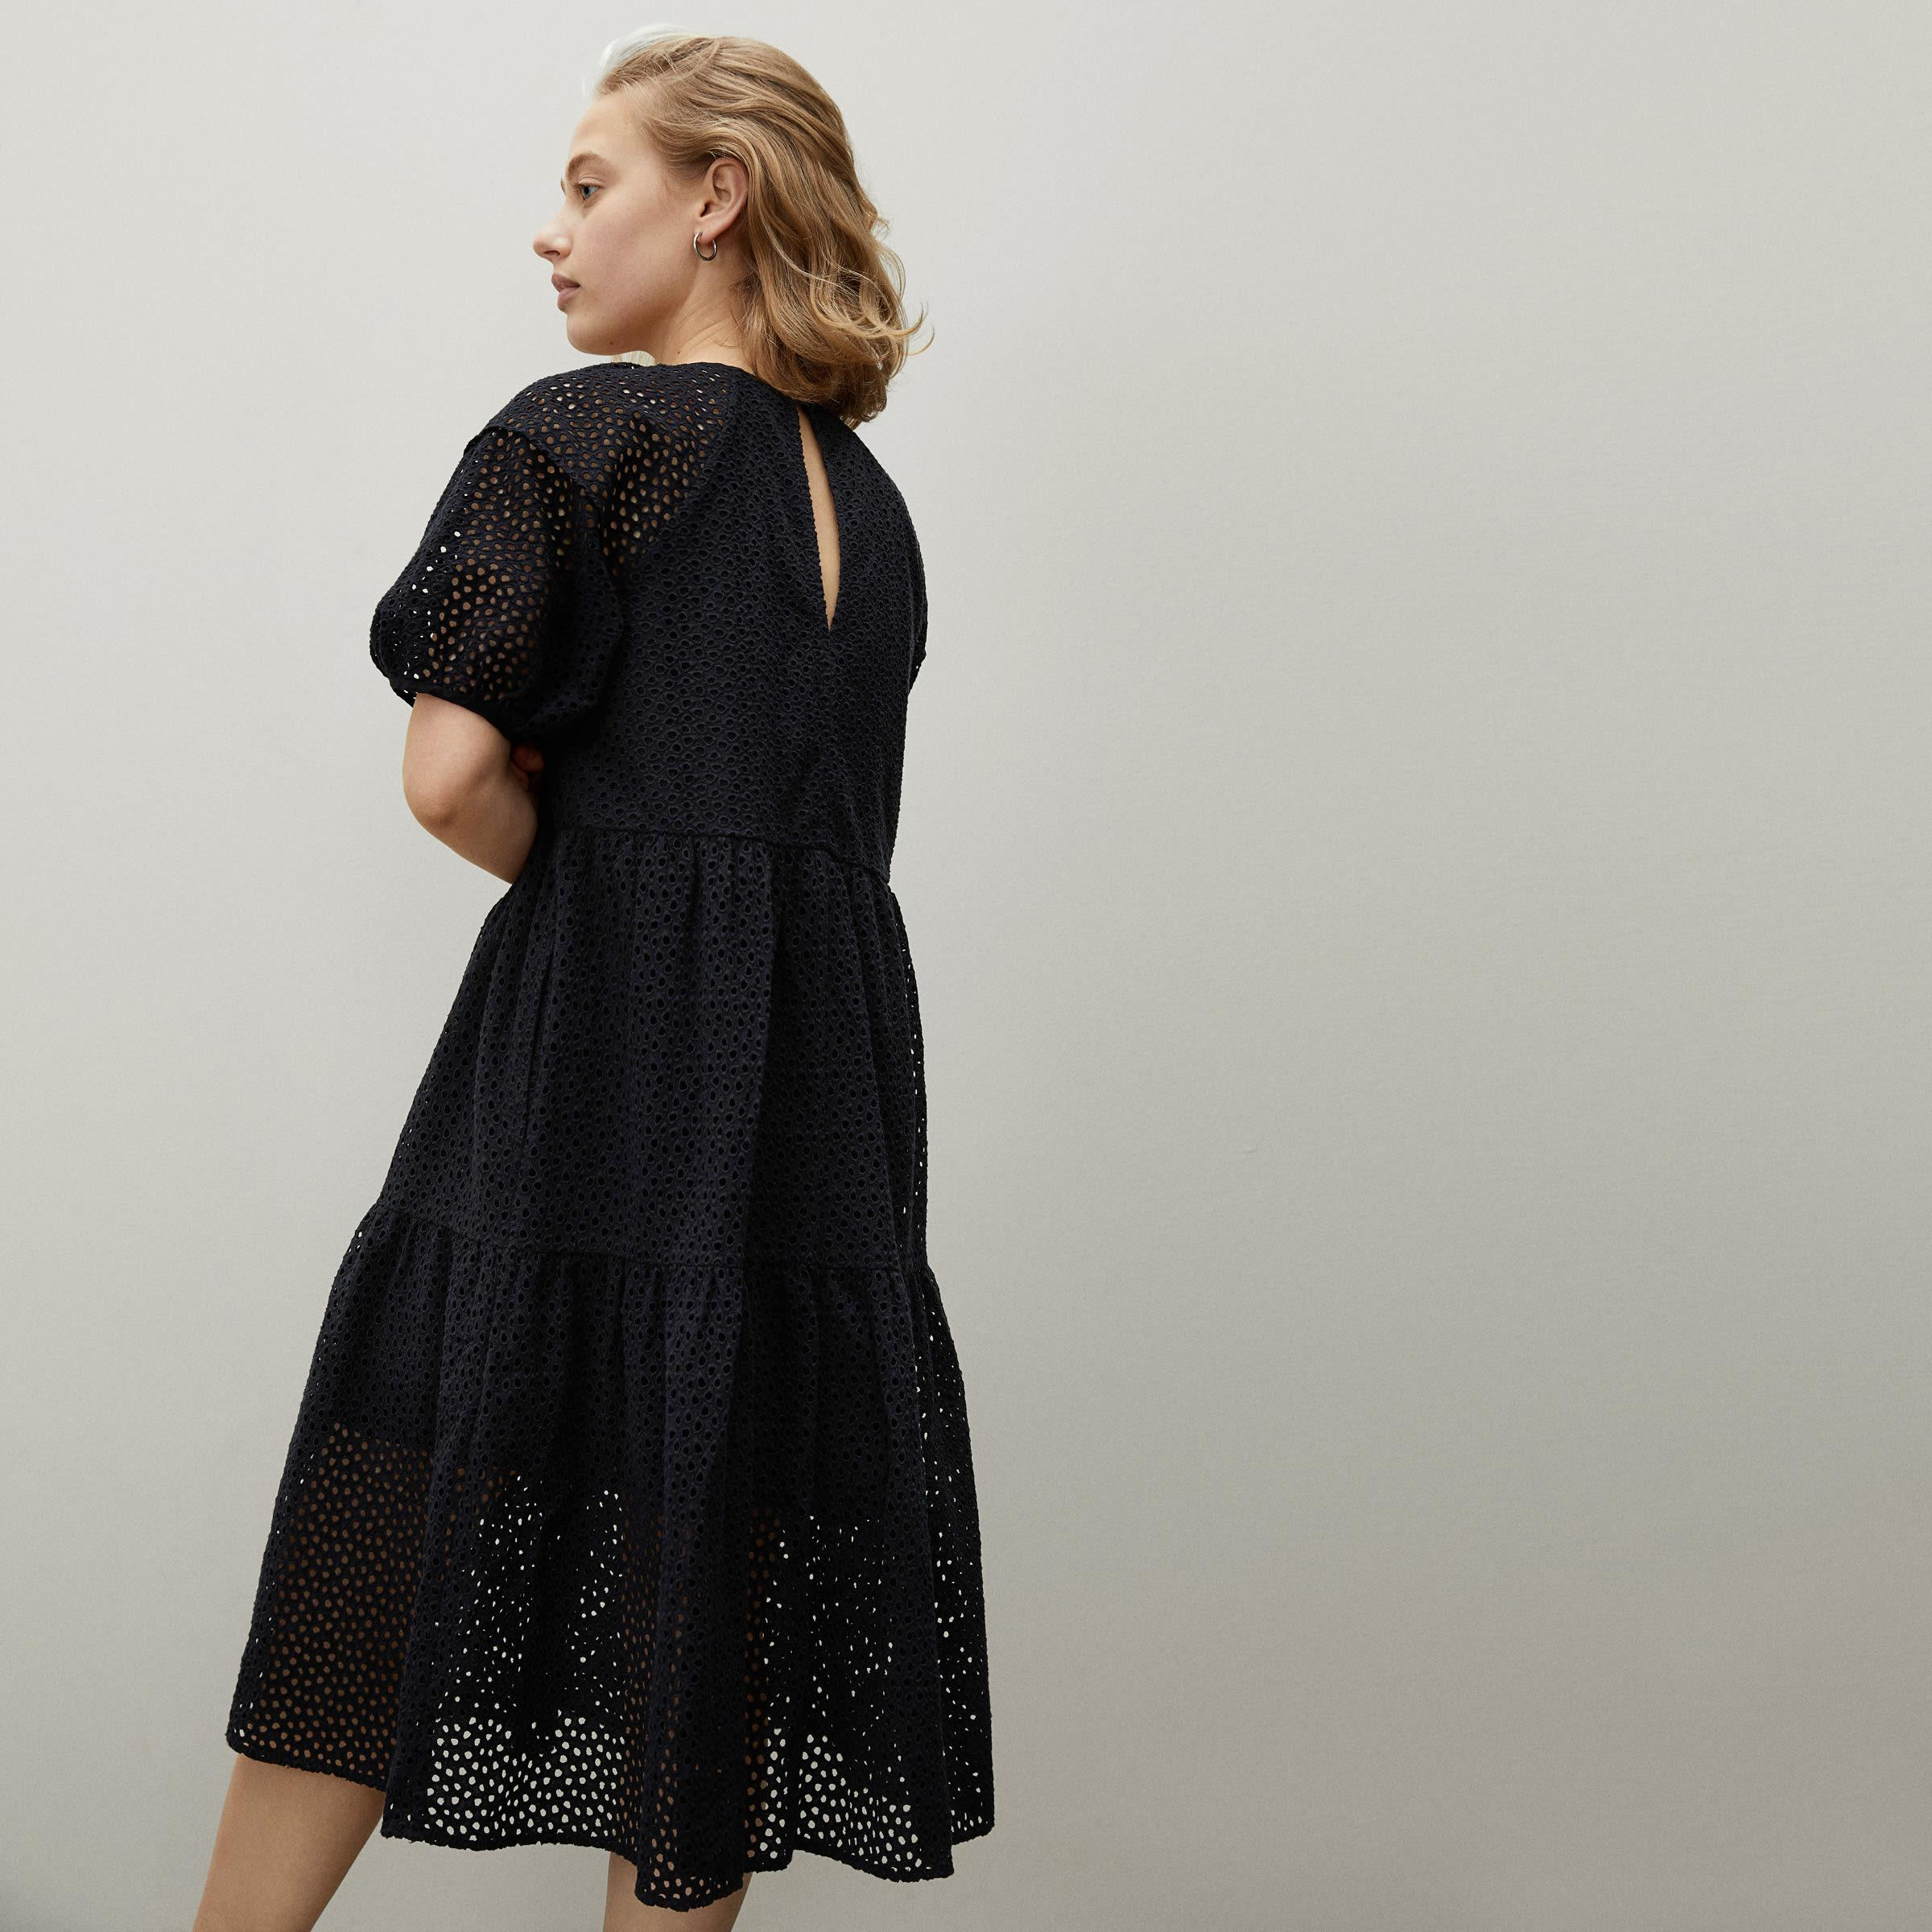 The Tiered Eyelet Dress 3